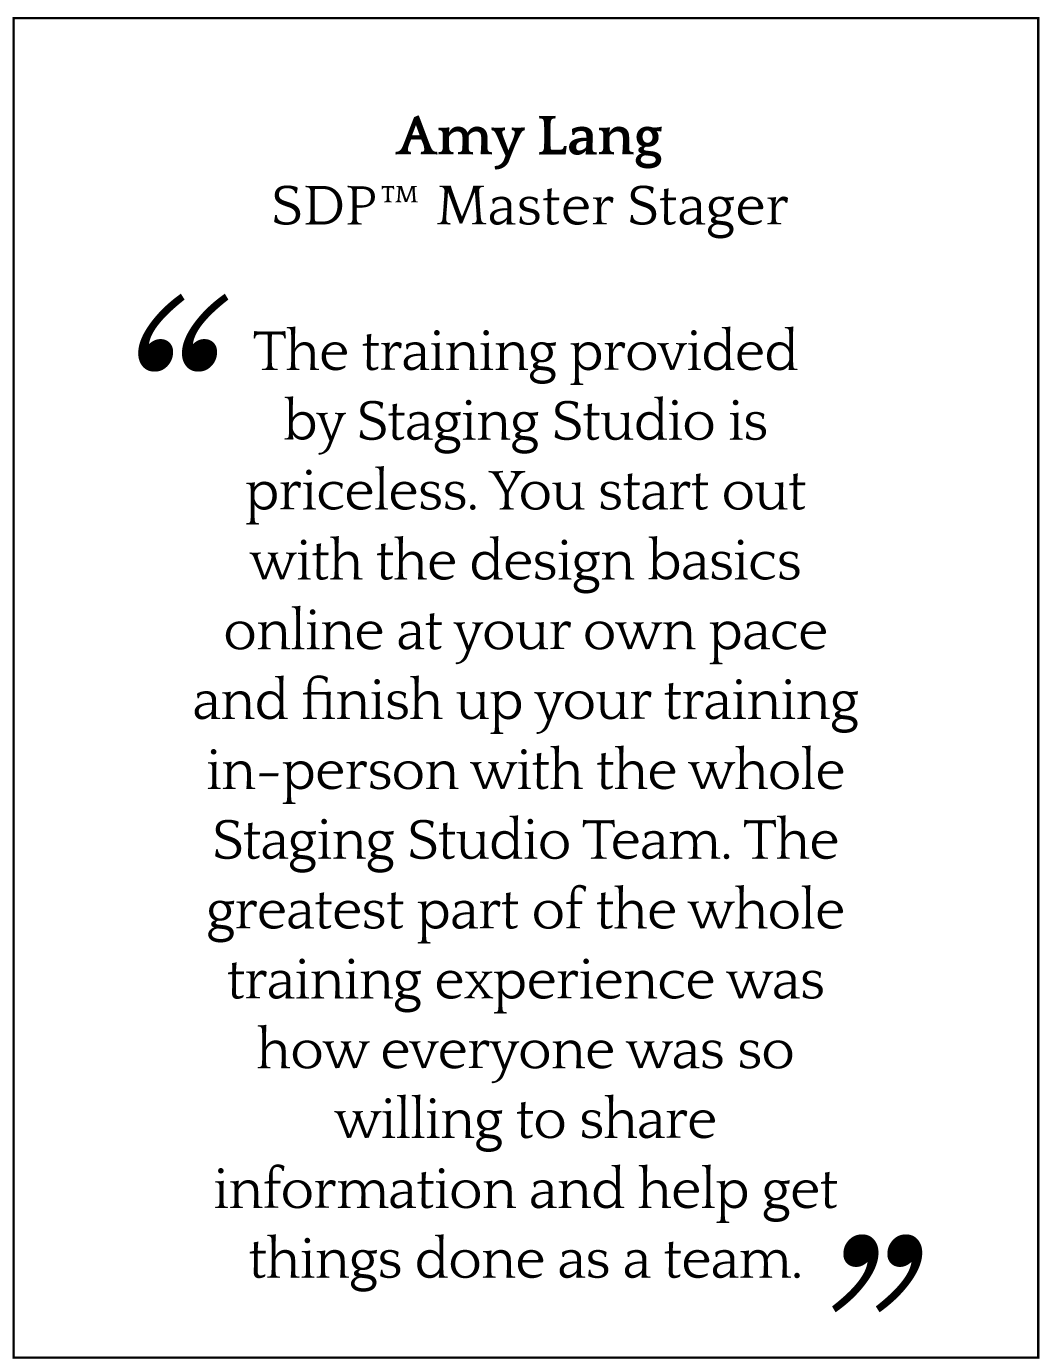 The training provided by Staging Studio is priceless. You start out with the design basics online at your own pace and finish up your training in-person with the whole Staging Studio Team. The greatest part of the whole training experience was how everyone was so willing to share information and help get things done as a team.